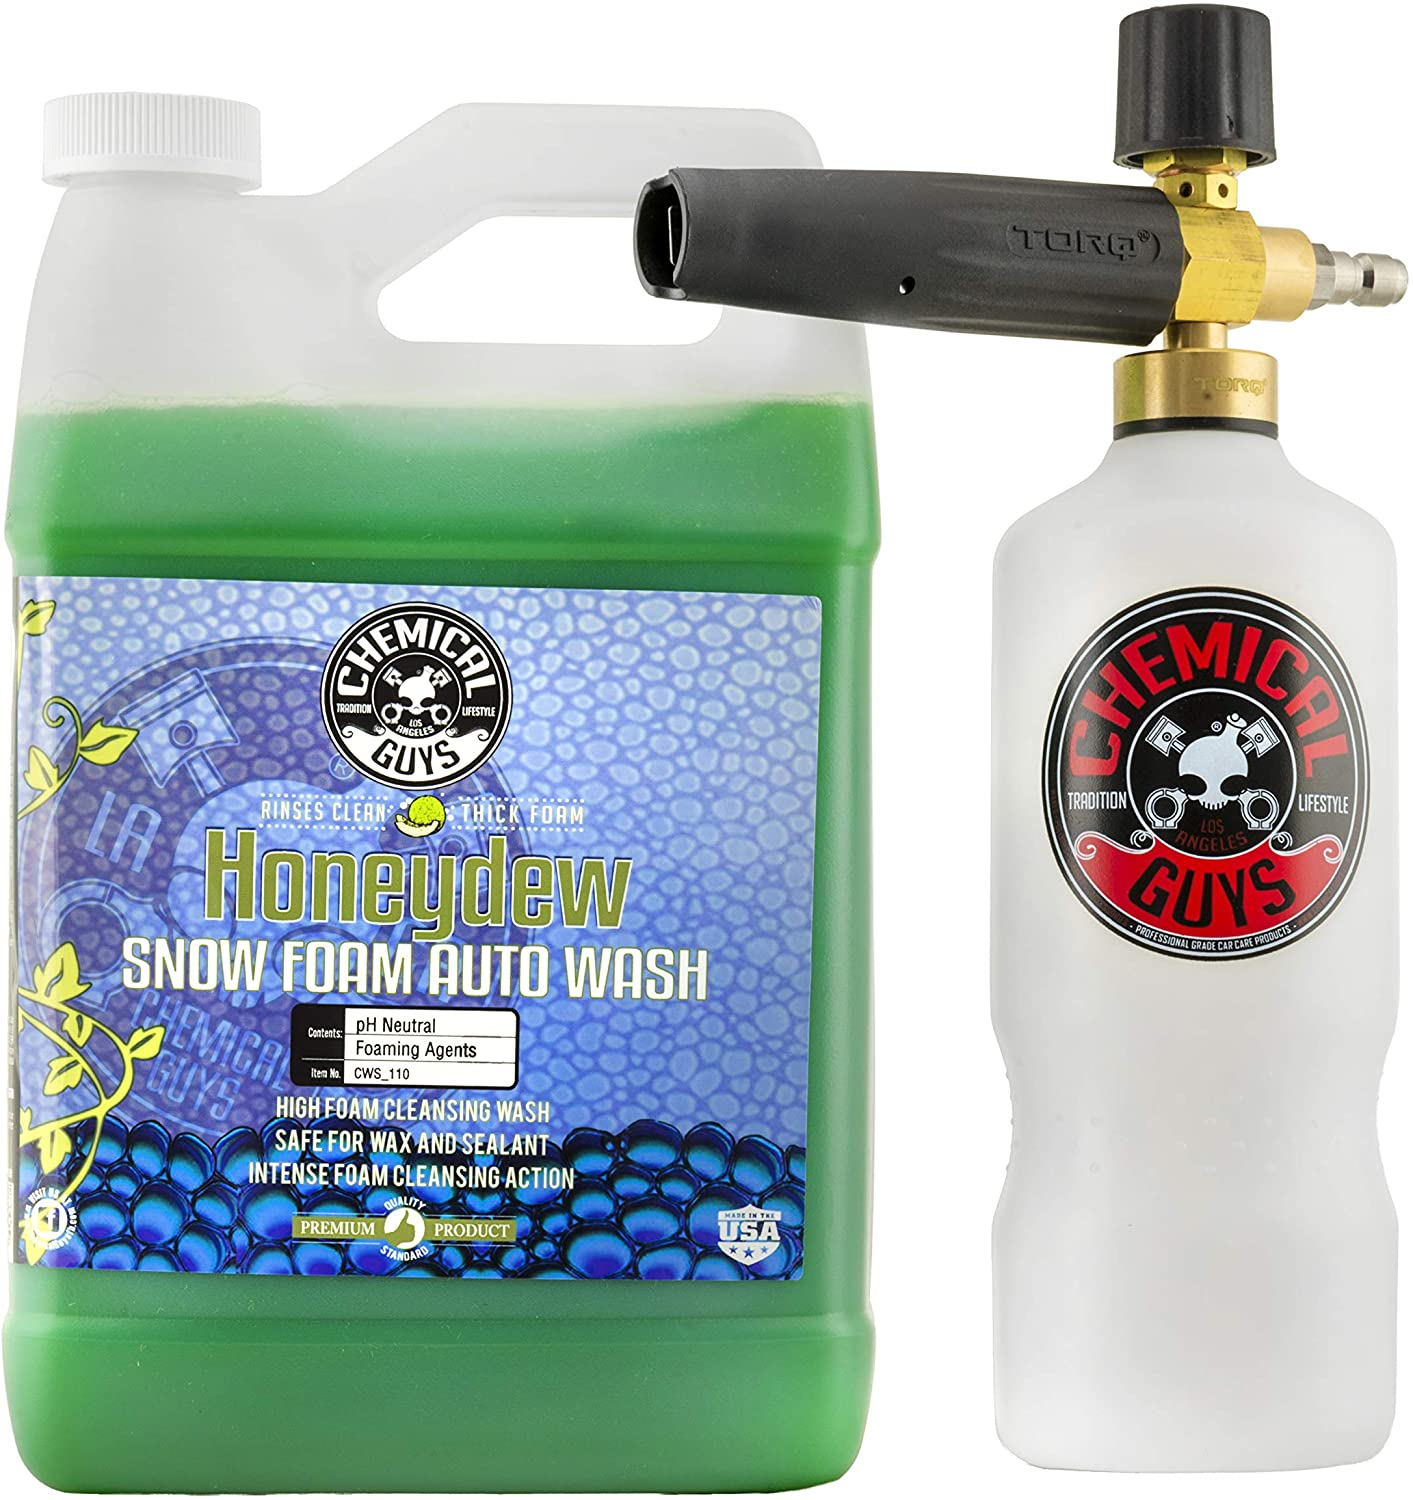 Chemical Guys Foam Cannon & Honeydew Snow Cleanser